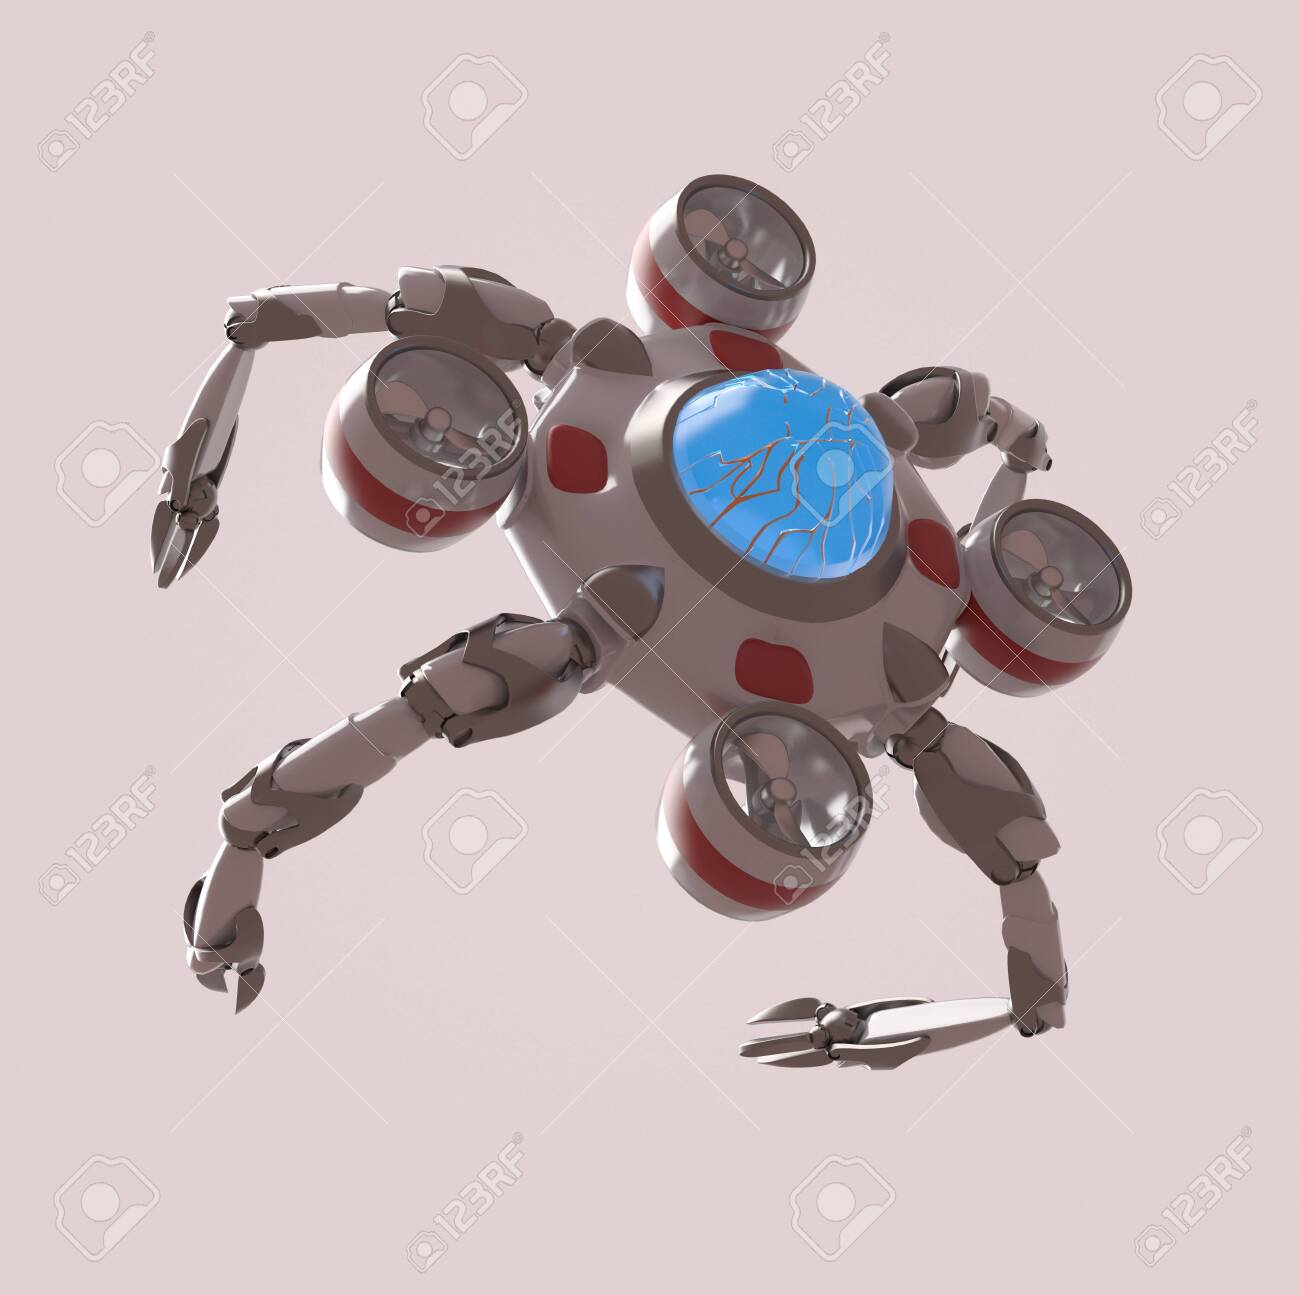 The nano robot on the white background,3d render. - 135310444